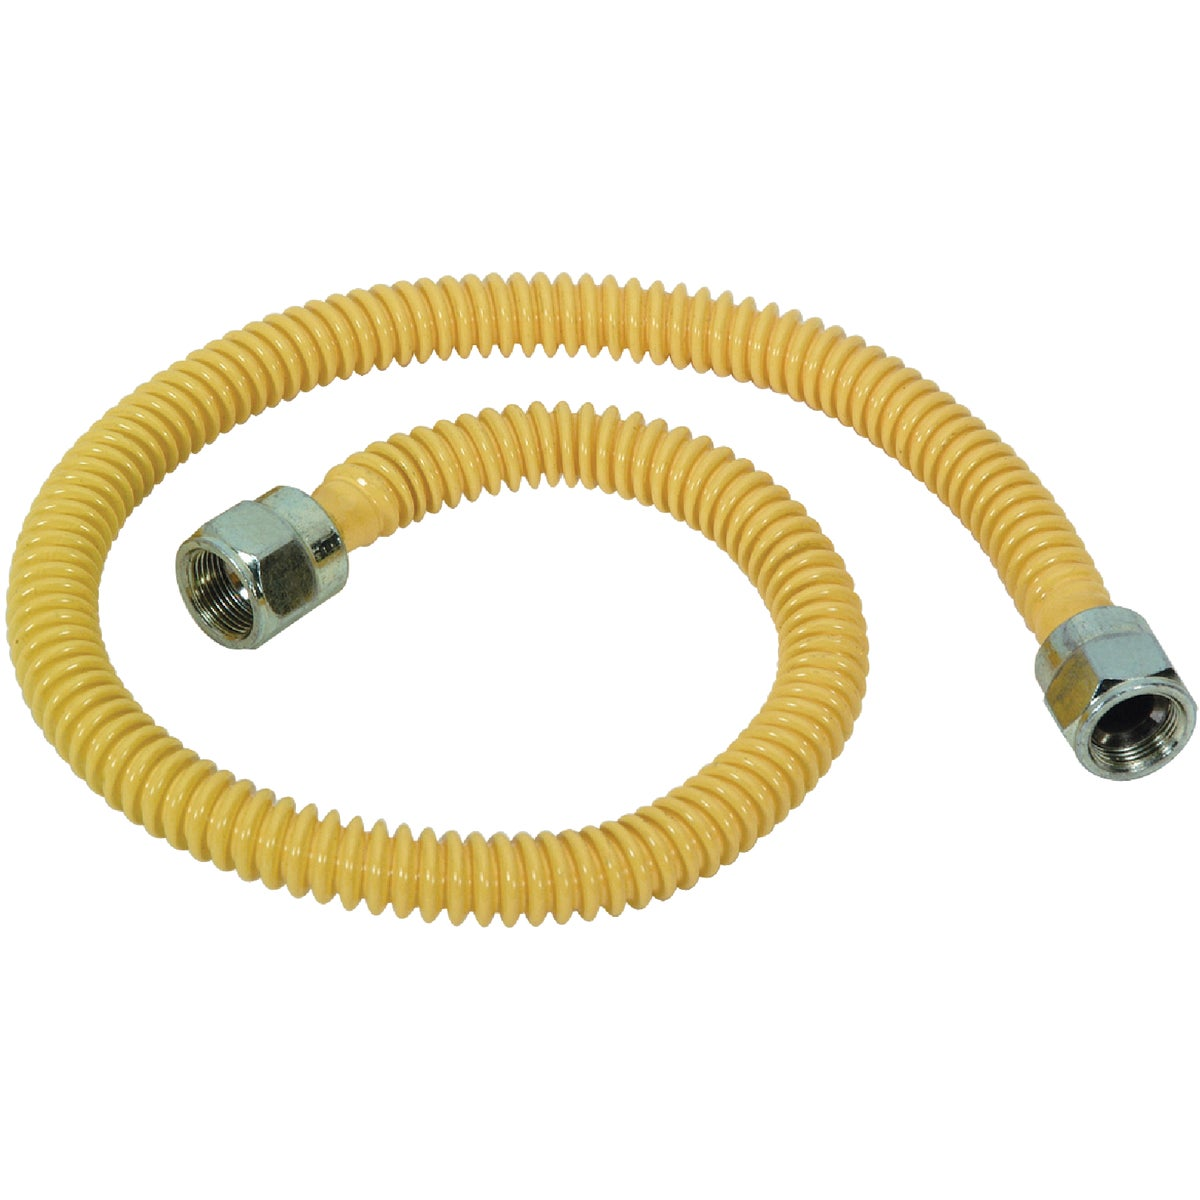 "3/8"" GAS CONNECTOR - CSSTNN-58N by Brass Craft"